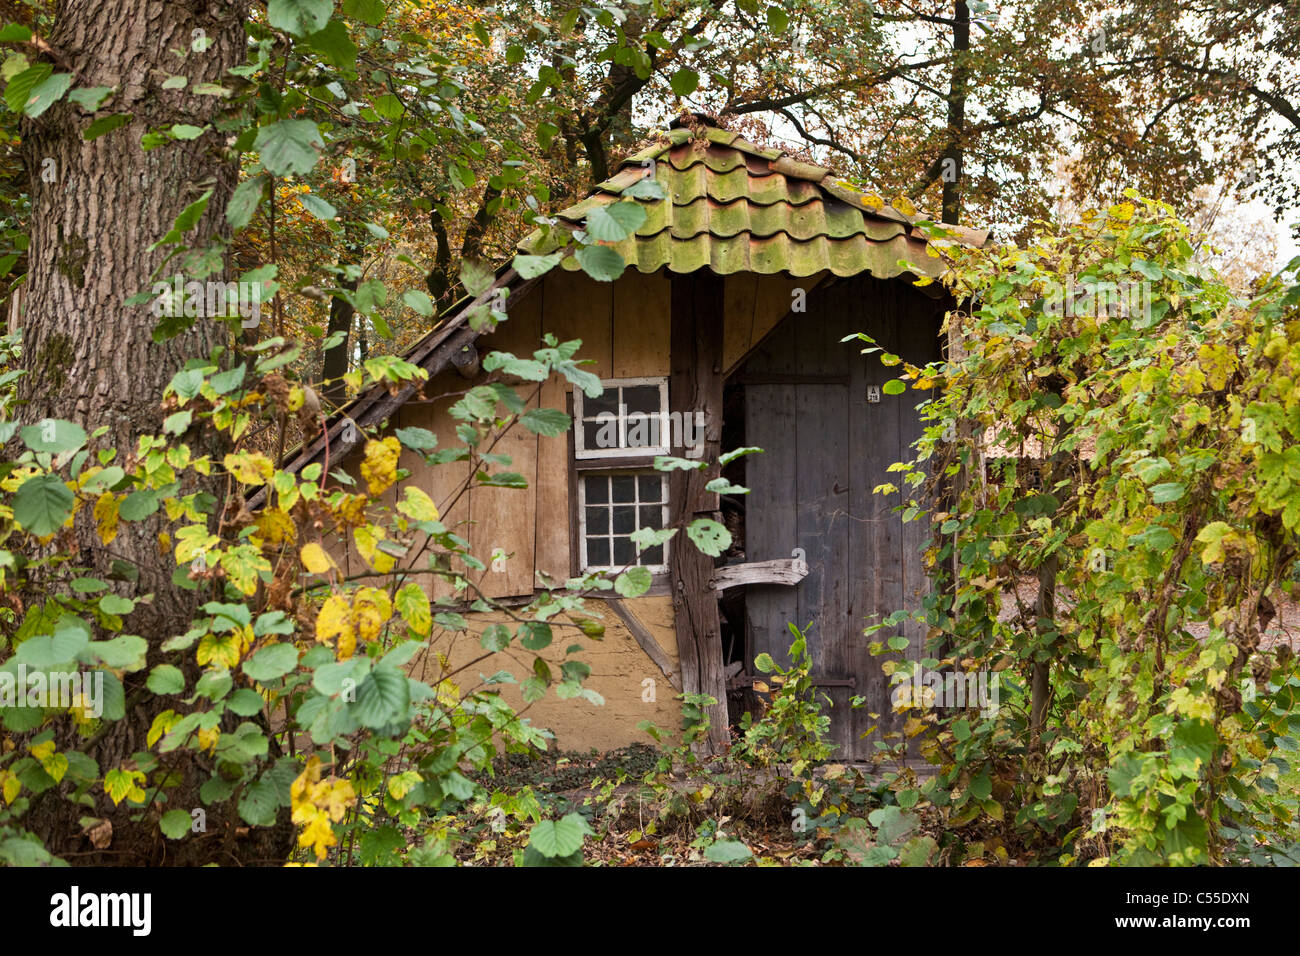 The Netherlands, Lievelde, Open air historical village, museum Erve Kots. - Stock Image